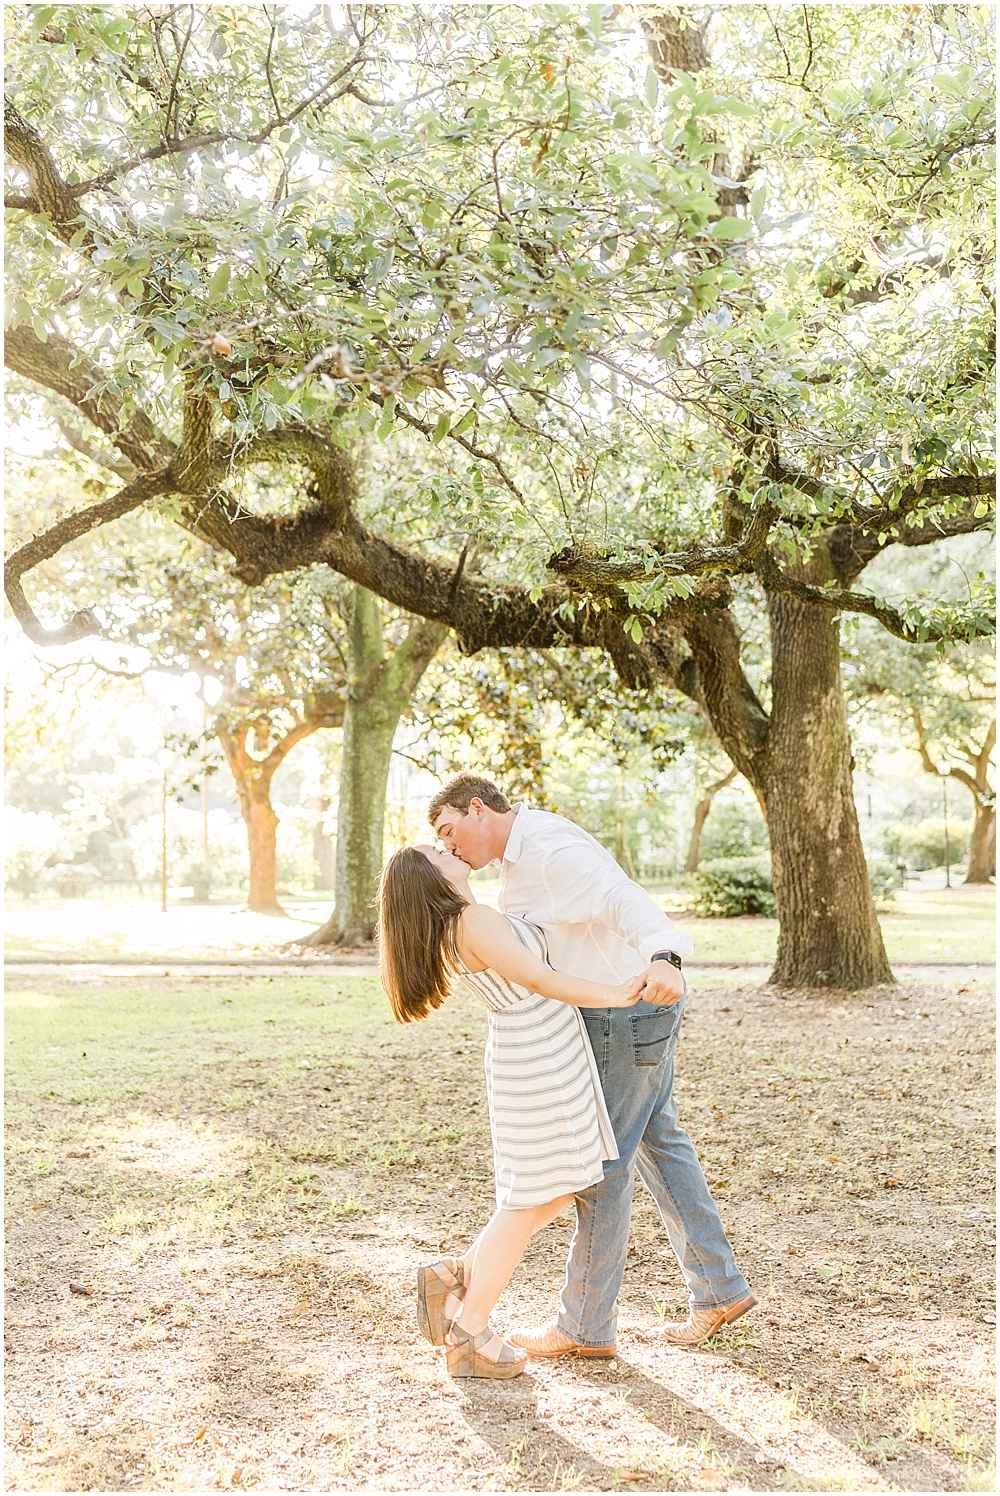 Ashton-Clark-Photography-Wedding-Portrait-Family-Photographer-Mobile-Alabama_0403.jpg